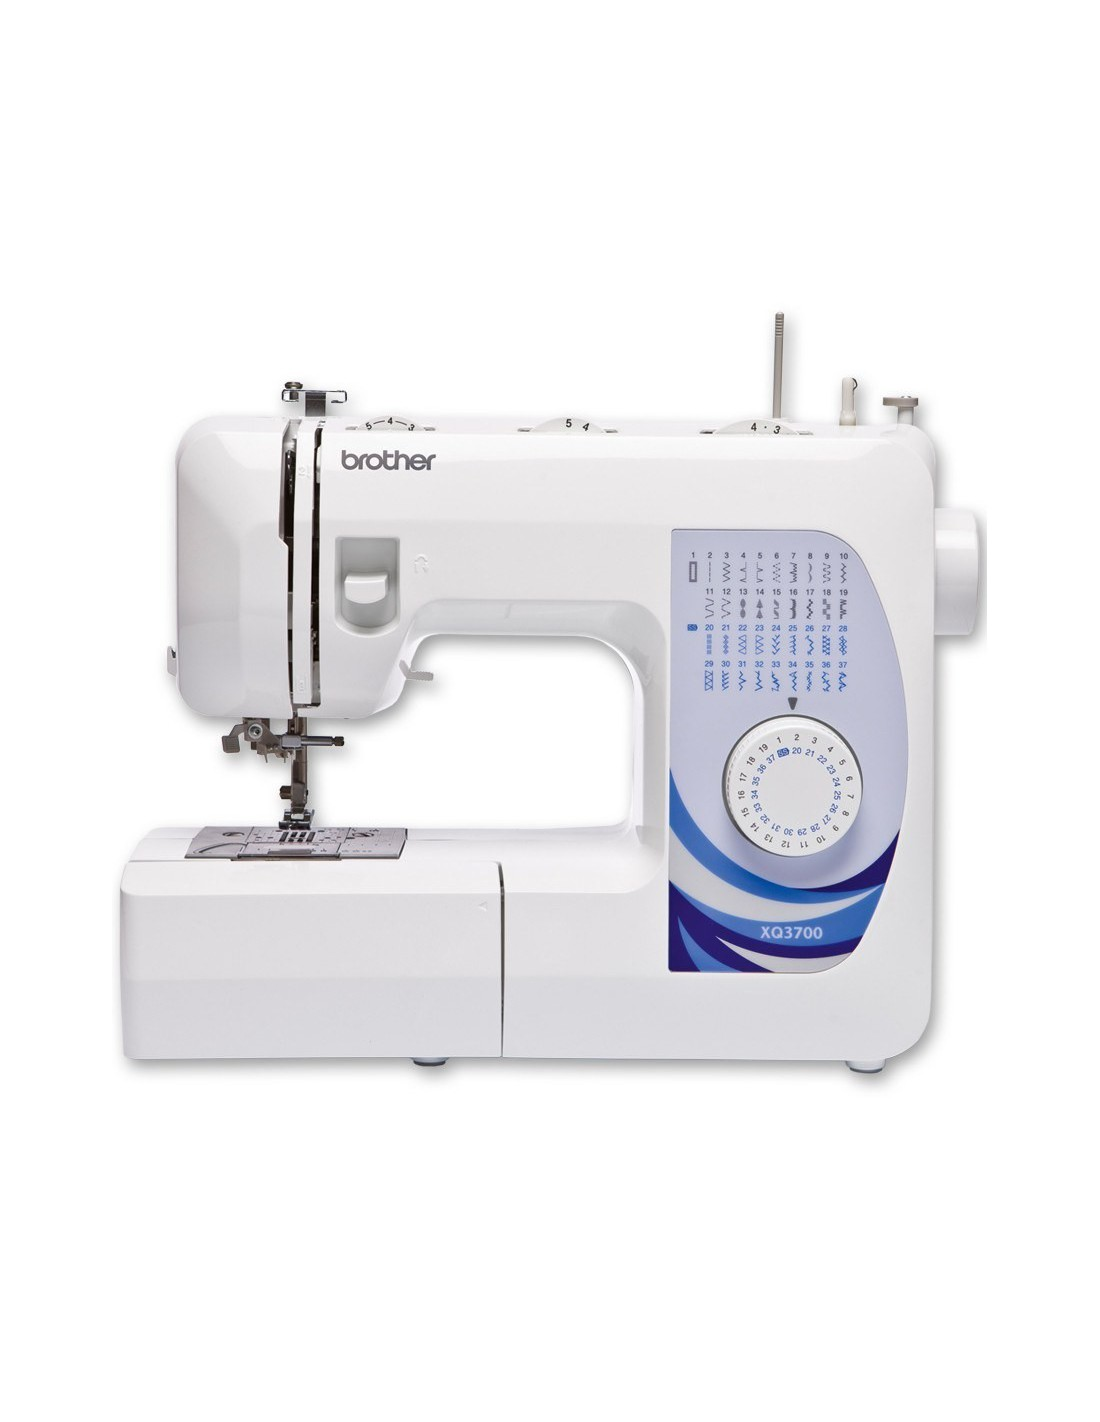 Brother Sewing Machine XQ3700 - Sewing Machines